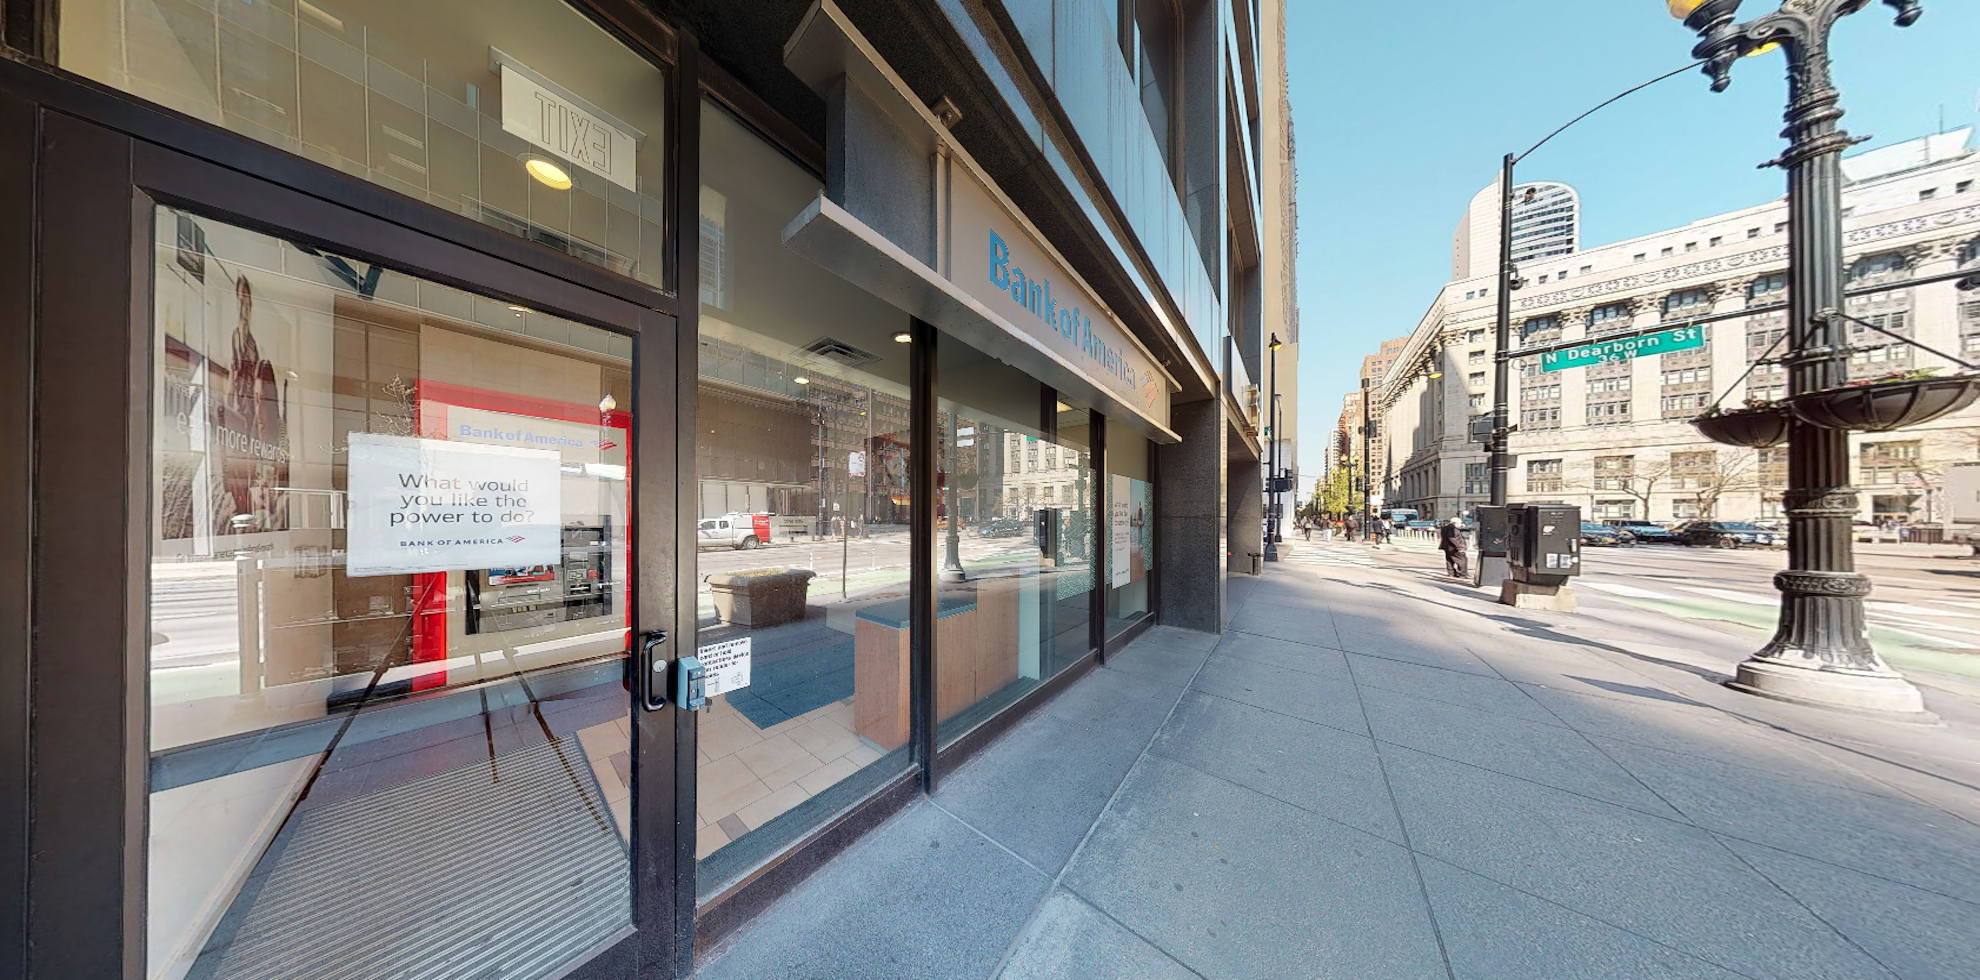 Bank of America financial center with walk-up ATM | 33 N Dearborn St, Chicago, IL 60602